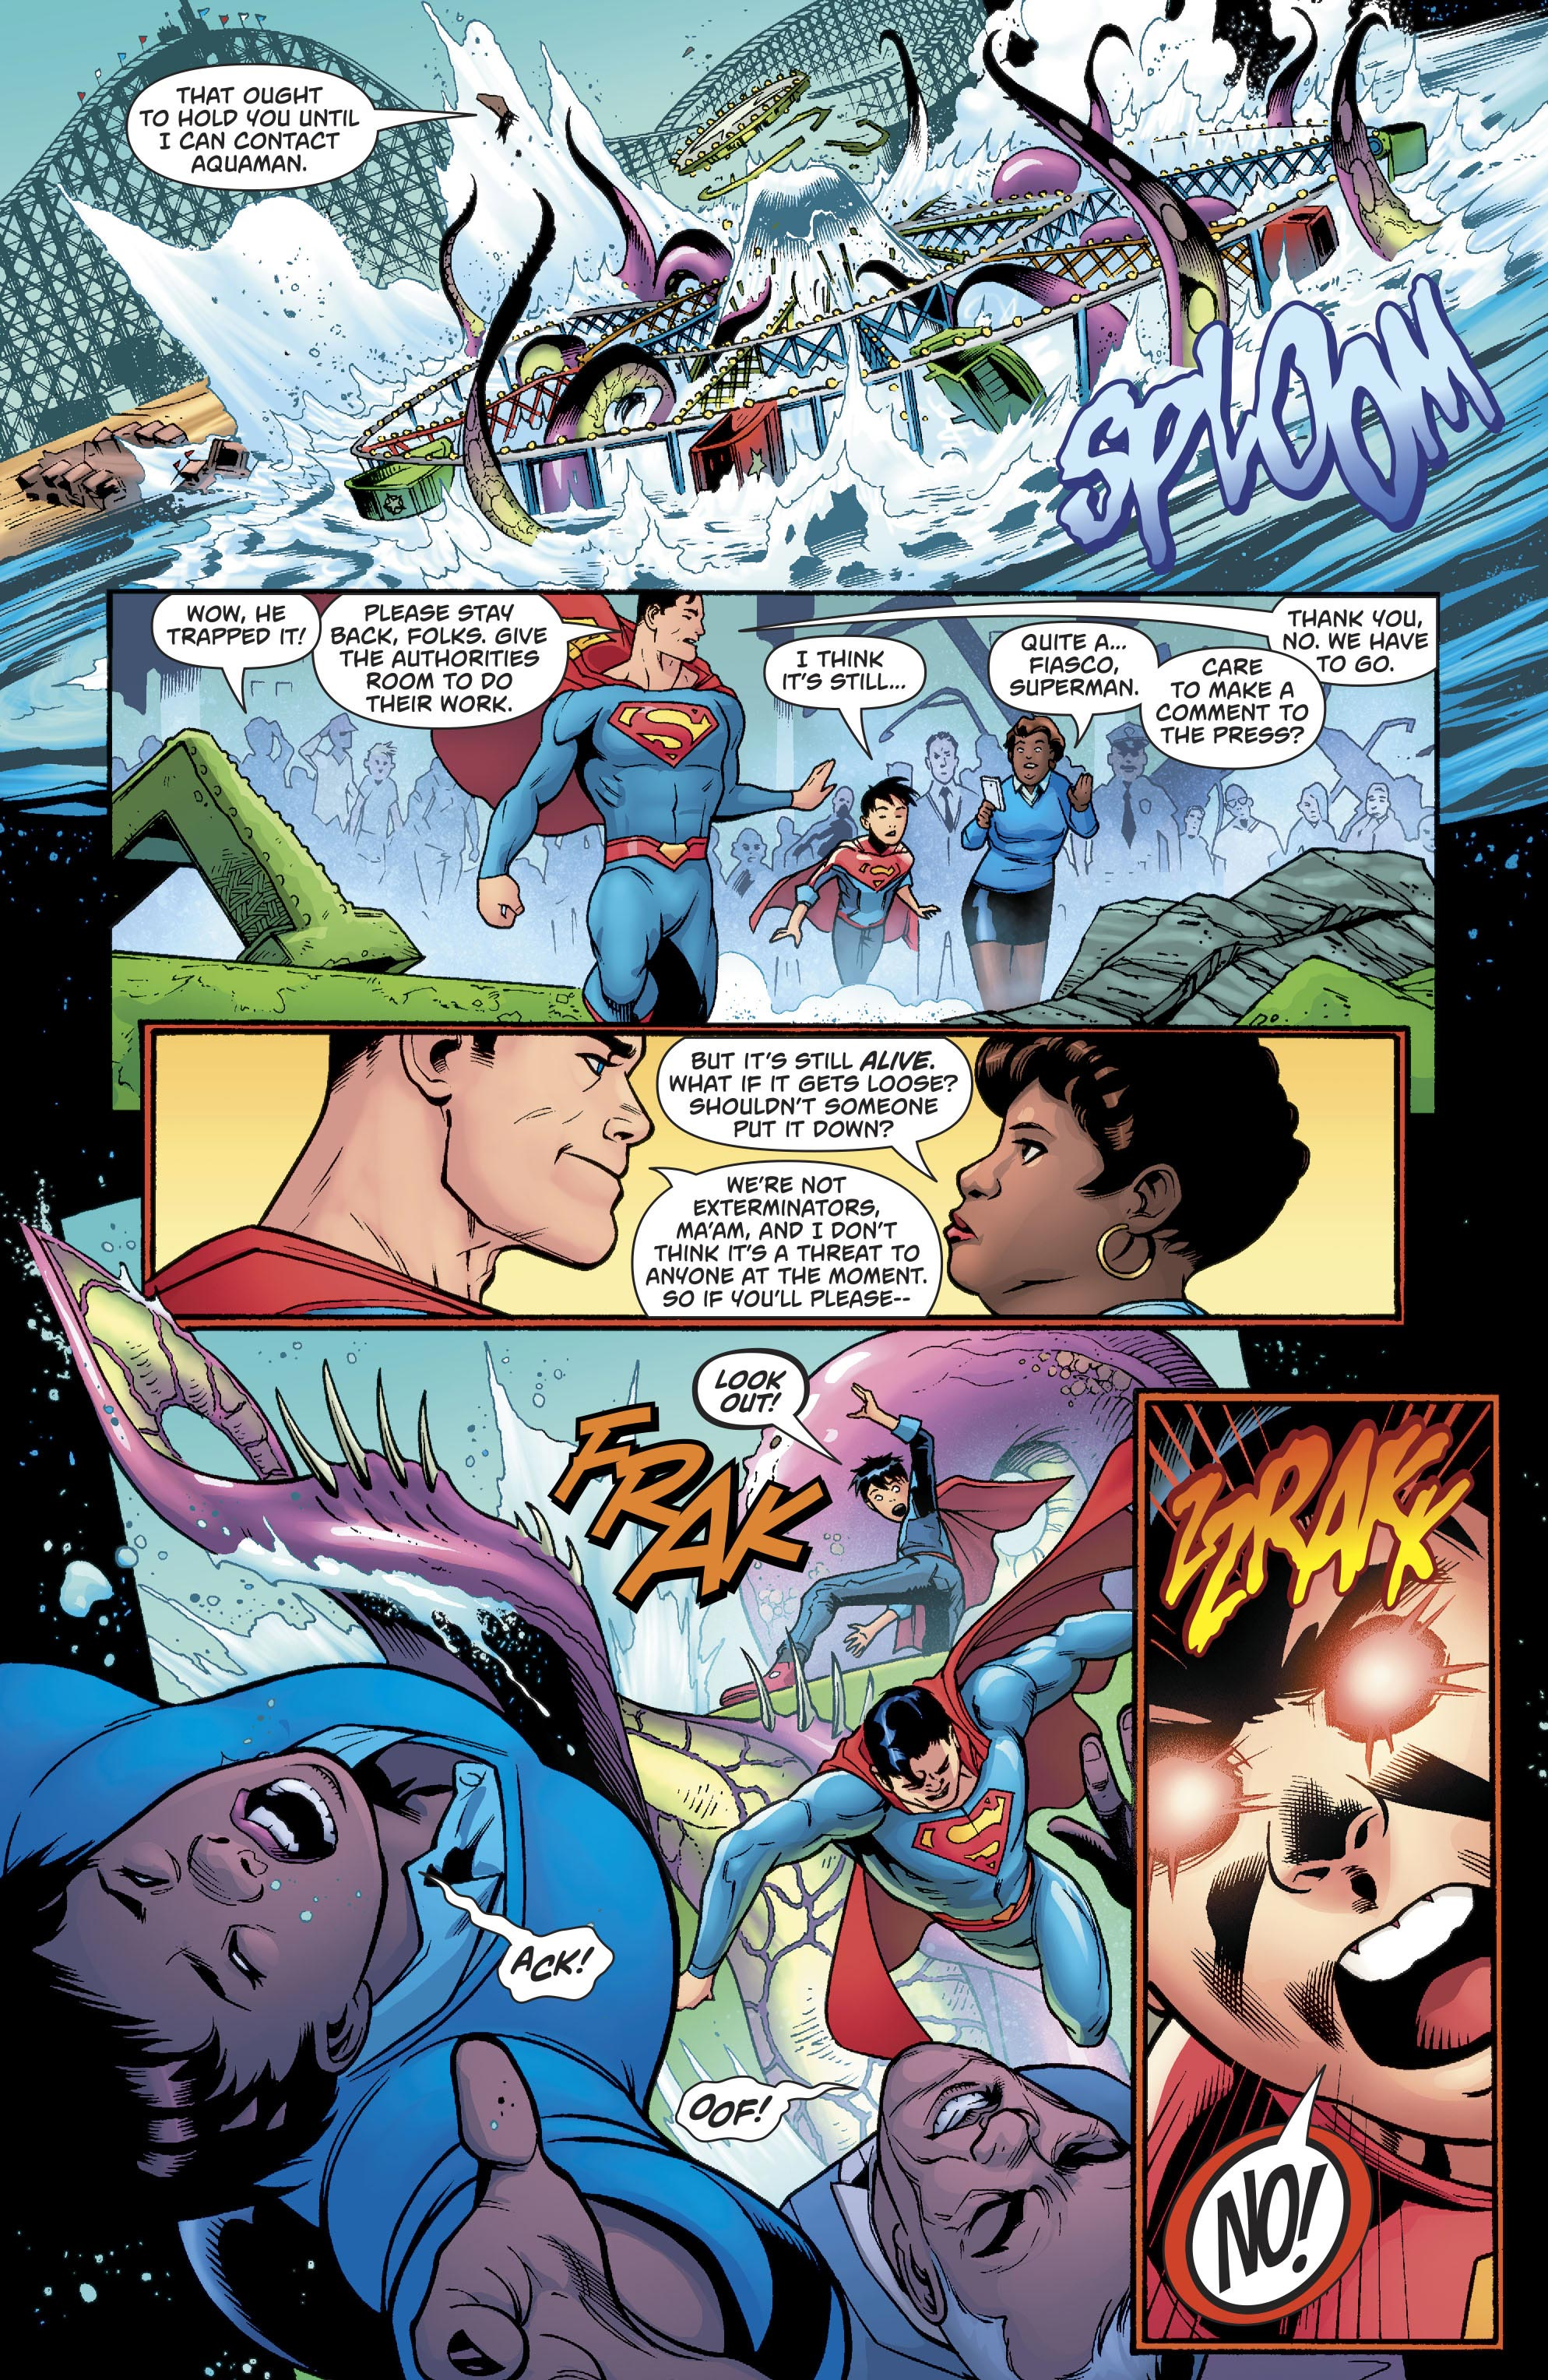 Superboy Kills A Giant Squid